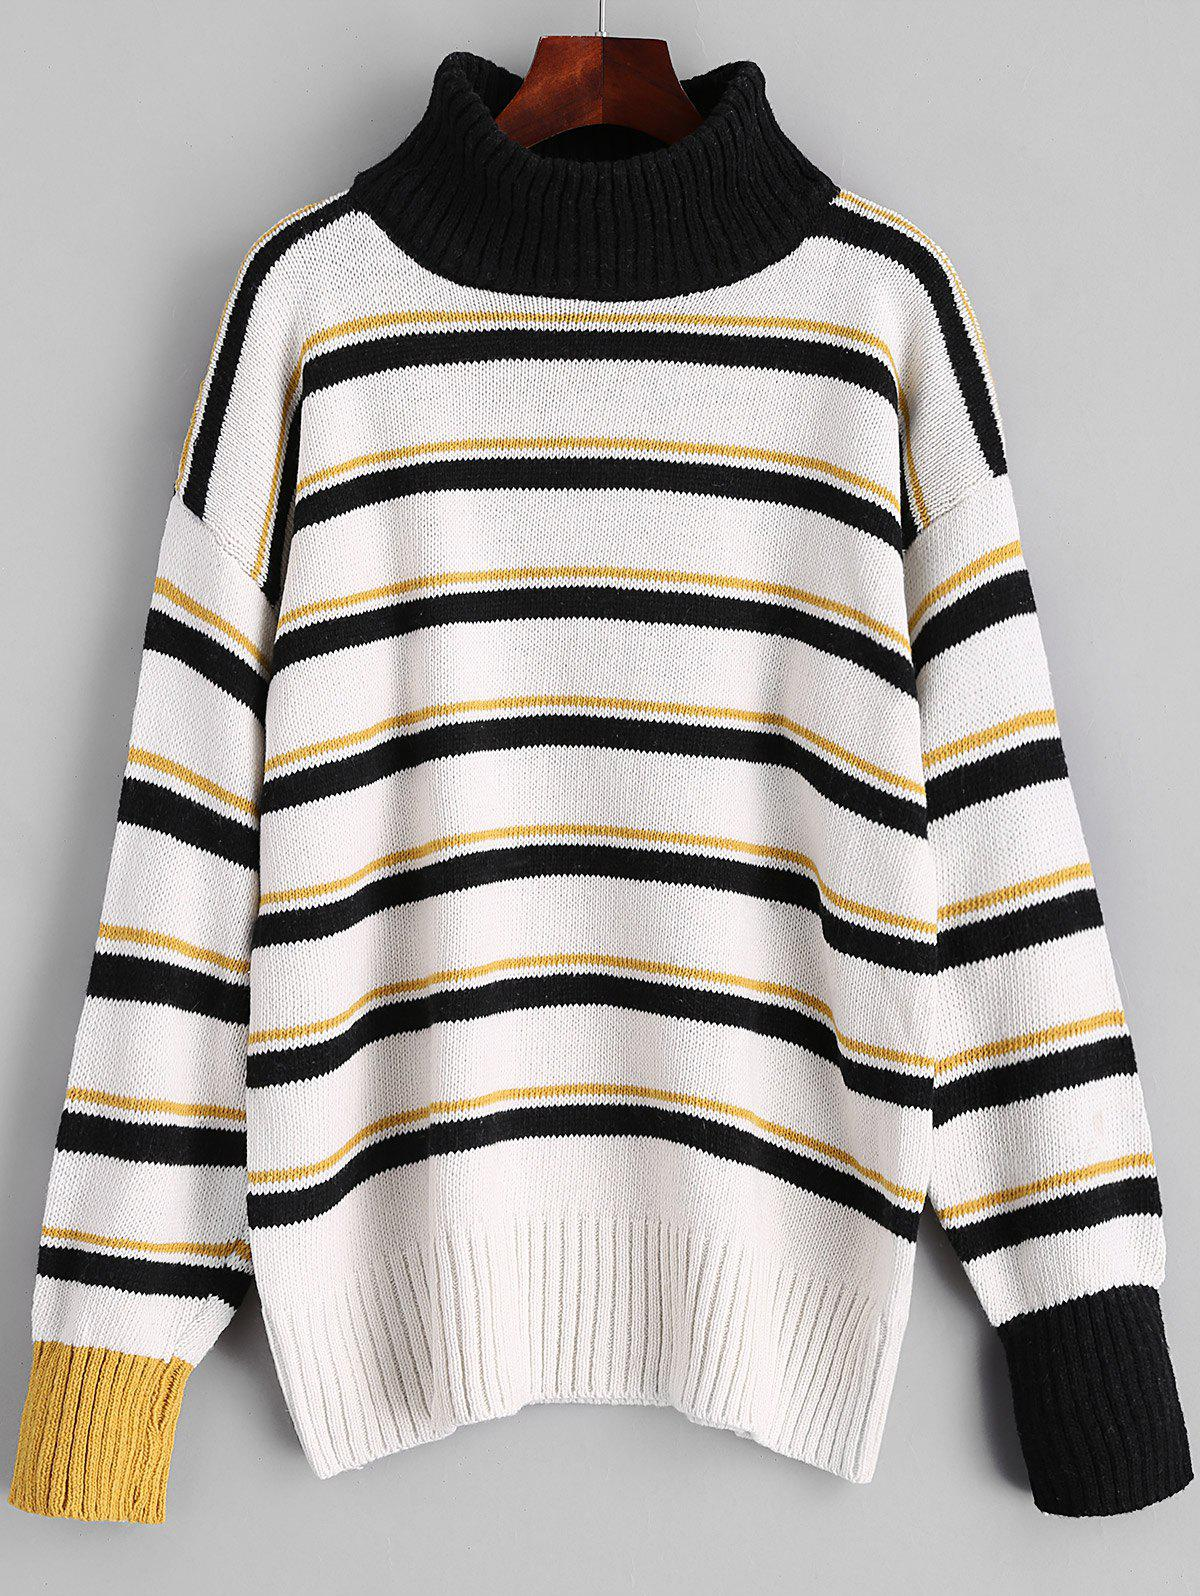 Turtleneck Stripes Pullover Sweater - BLACK ONE SIZE